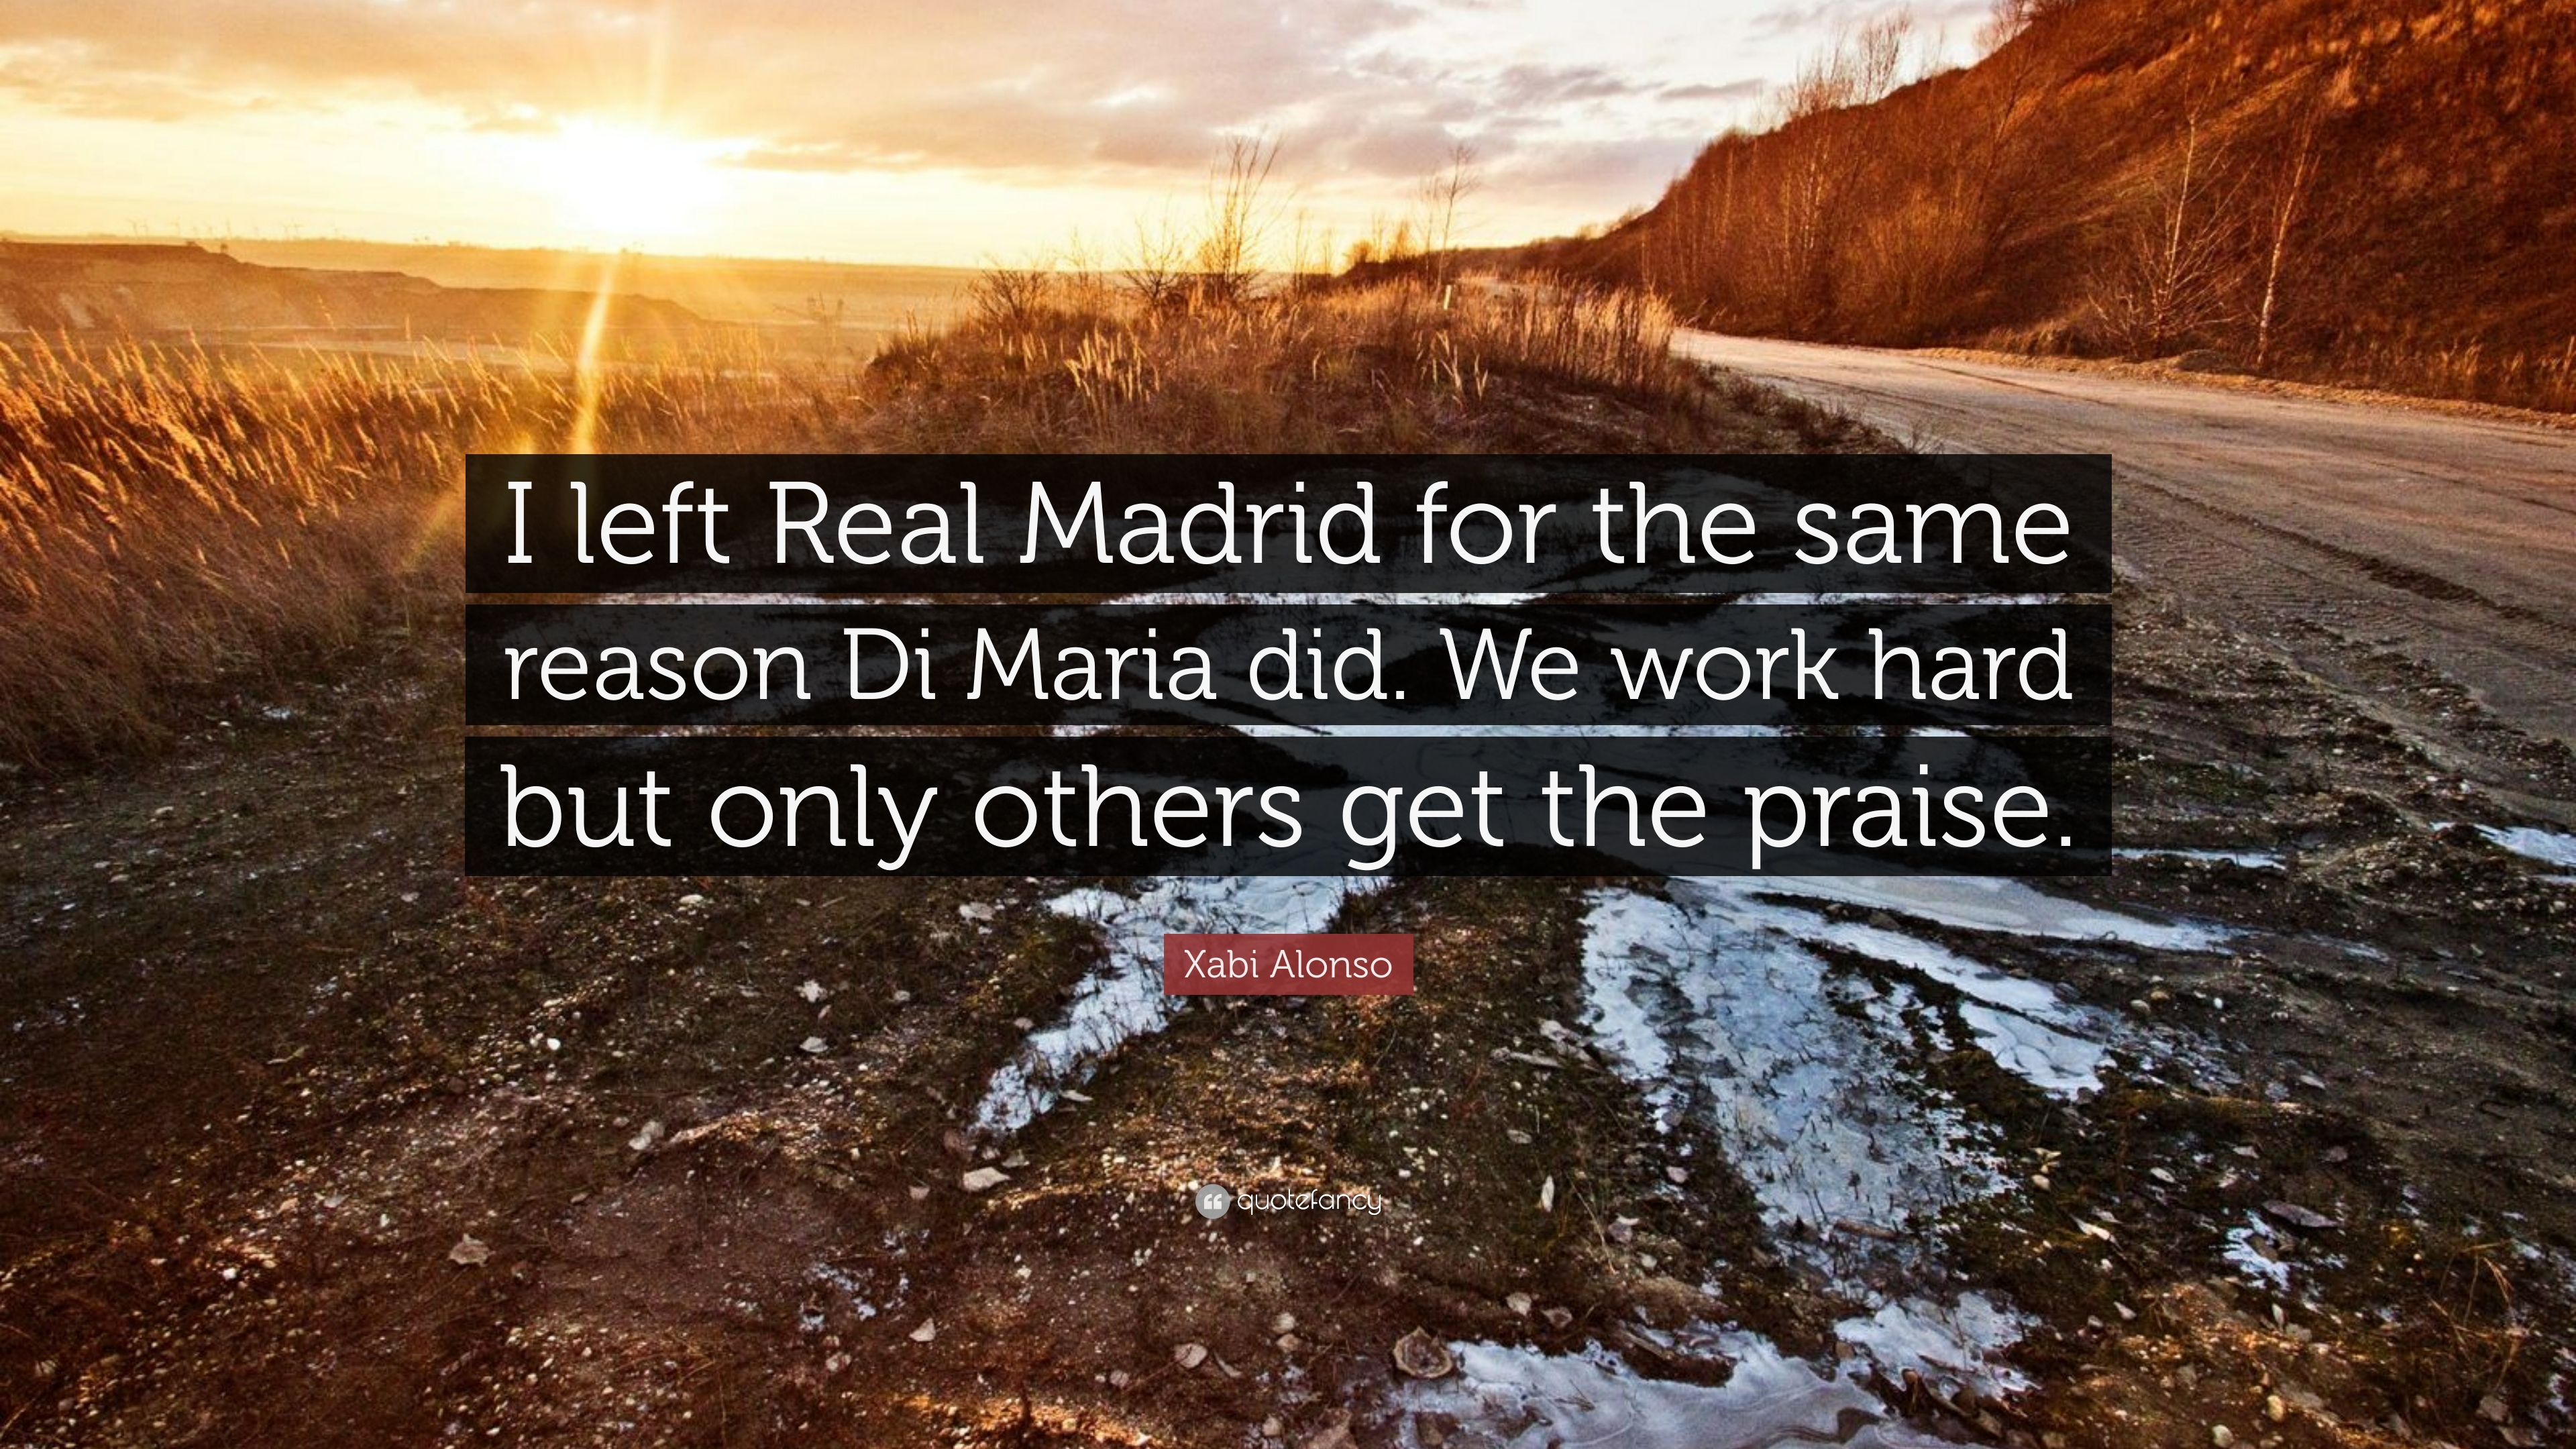 xabi alonso quote i left real madrid